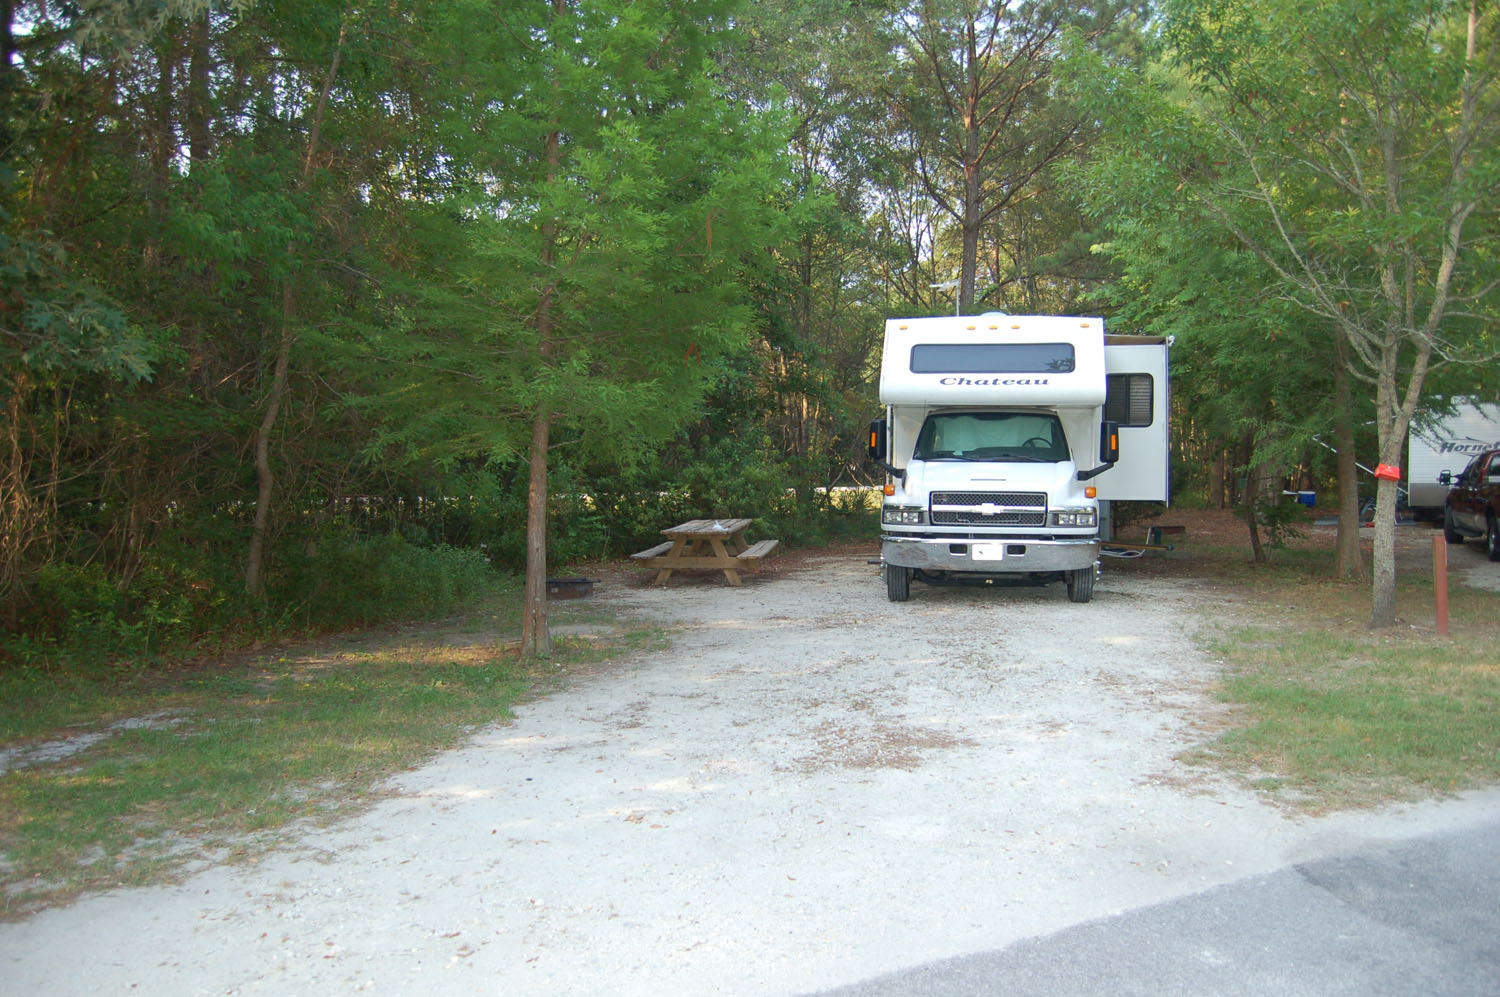 Image of campsite #65 at the Campground at James Island County Park